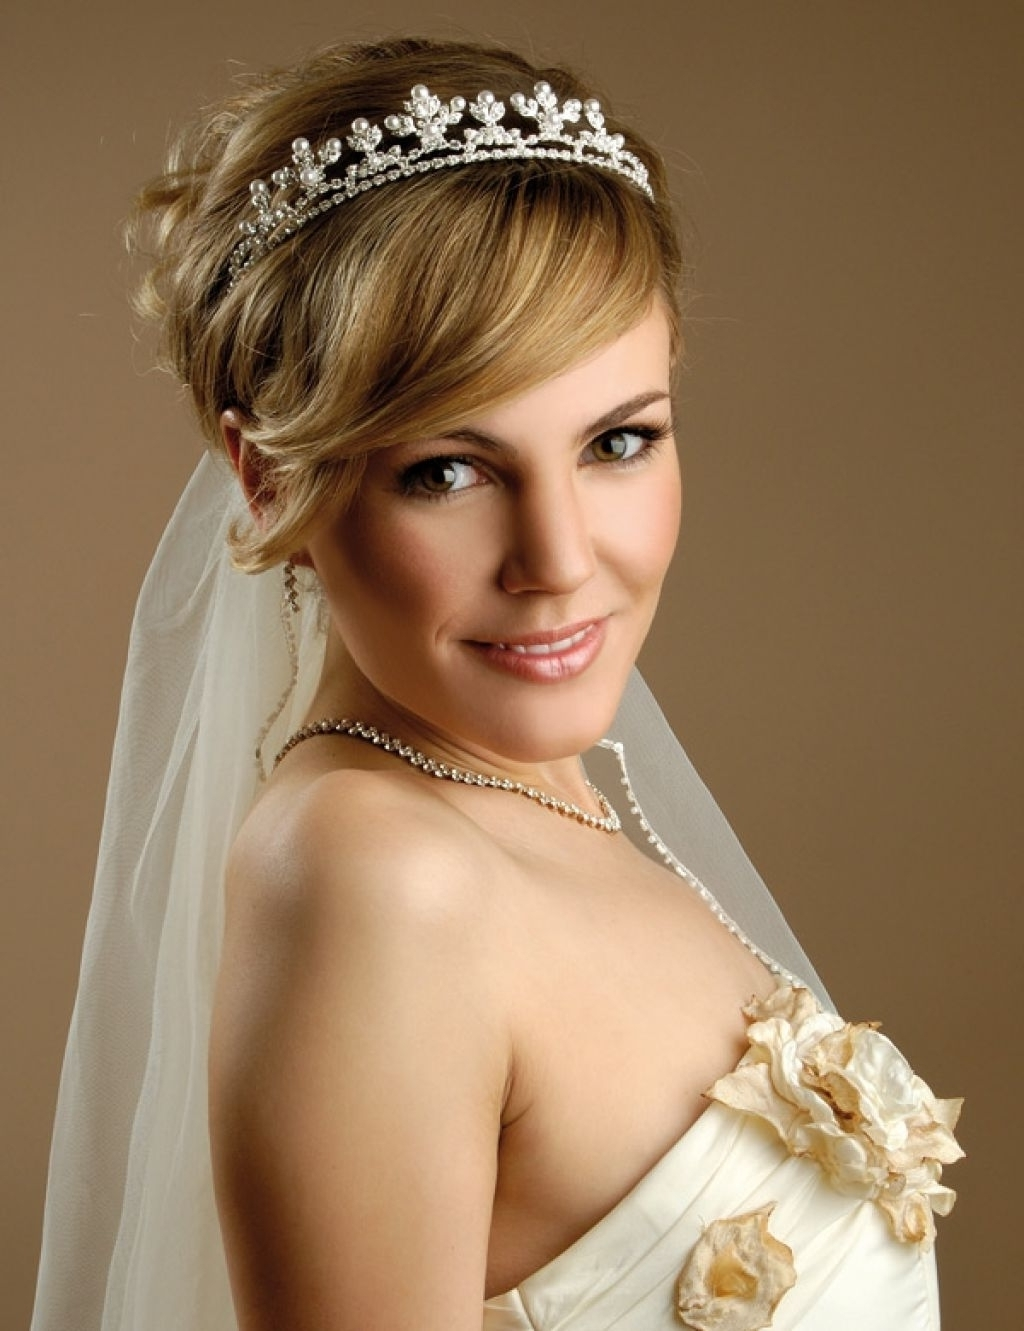 Favorite Wedding Hairstyles For Short Hair With Veil Within Photo: Wedding Hairstyles For Short Hair With Tiara And Veil Stylish (View 15 of 15)